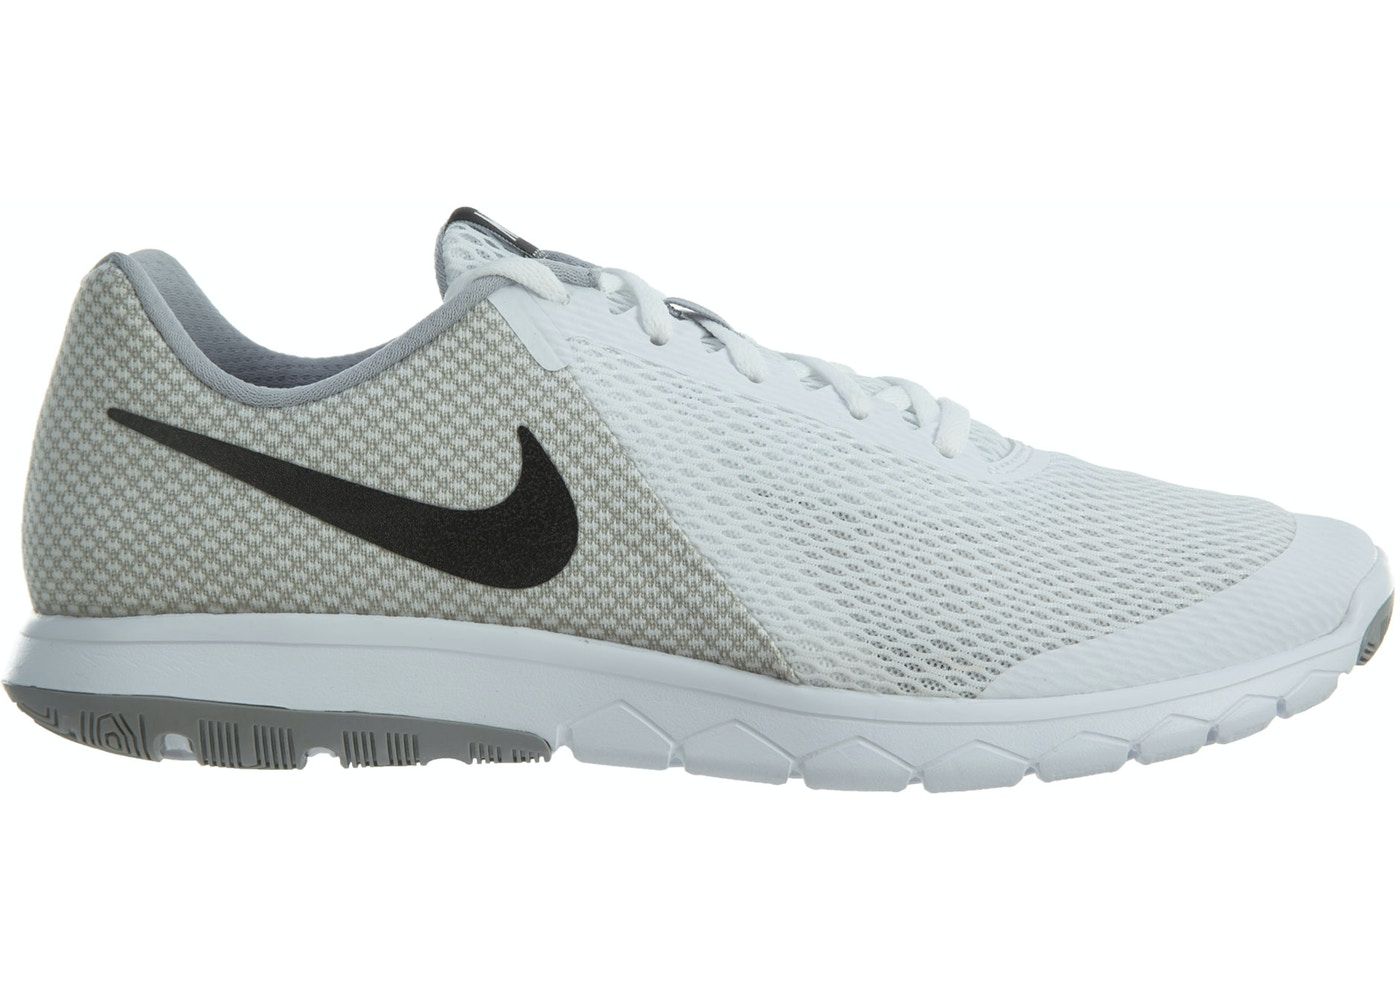 8a06cb5522c2e Sell. or Ask. Size --. View All Bids. Nike Flex Experience Rn 6 White Black-Wolf  Grey